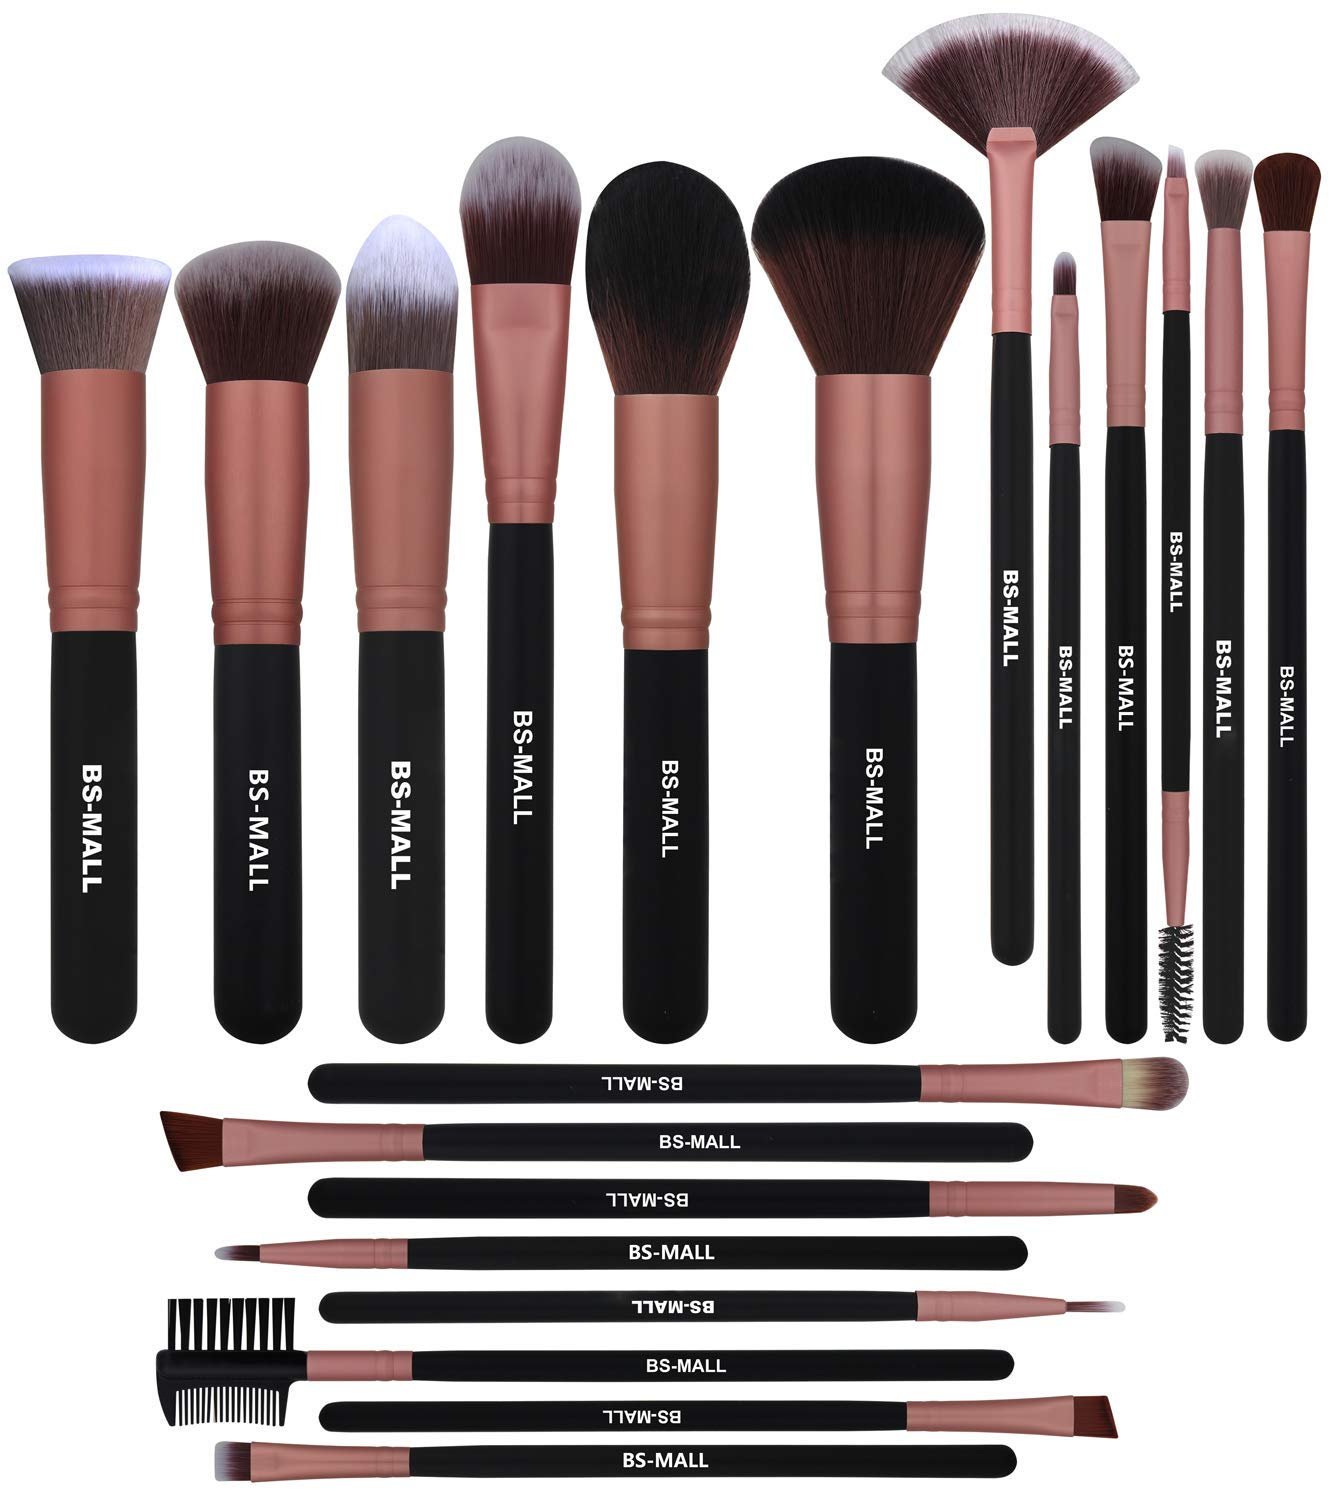 BS-MALL Premium Synthetic Kabuki Brush - Eye Make Up Brushes - Makeup Brush Set (20 Pcs,Rose Golden)